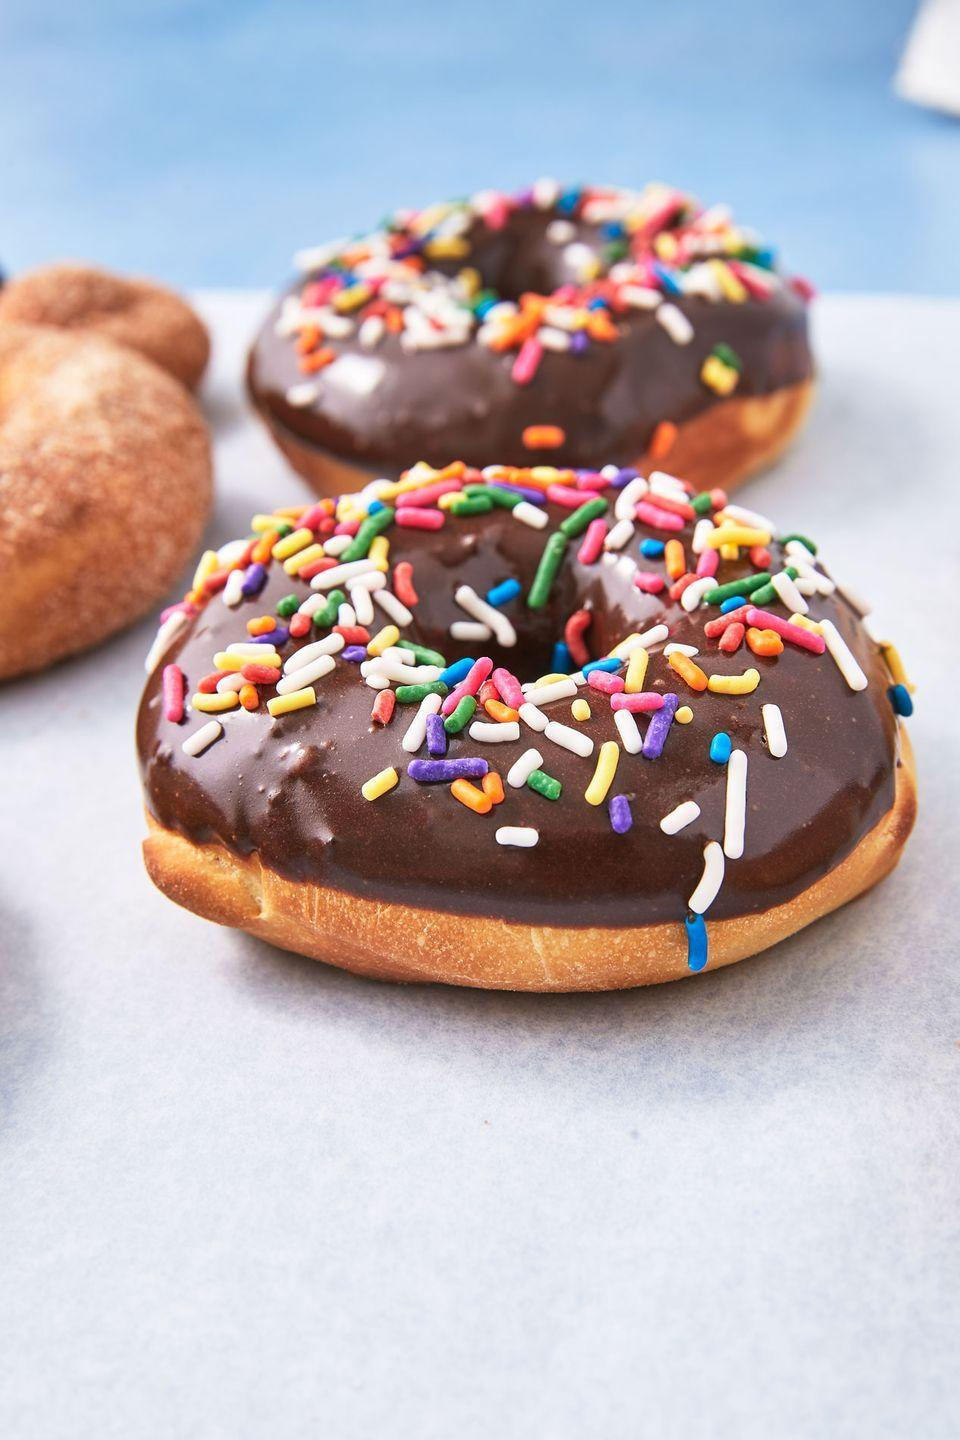 """<p>For the person you donut ever wanna live without.</p><p>Get the recipe from <a href=""""https://www.delish.com/cooking/recipe-ideas/a28108343/air-fryer-doughnuts-recipe/"""" rel=""""nofollow noopener"""" target=""""_blank"""" data-ylk=""""slk:Delish"""" class=""""link rapid-noclick-resp"""">Delish</a>.</p>"""